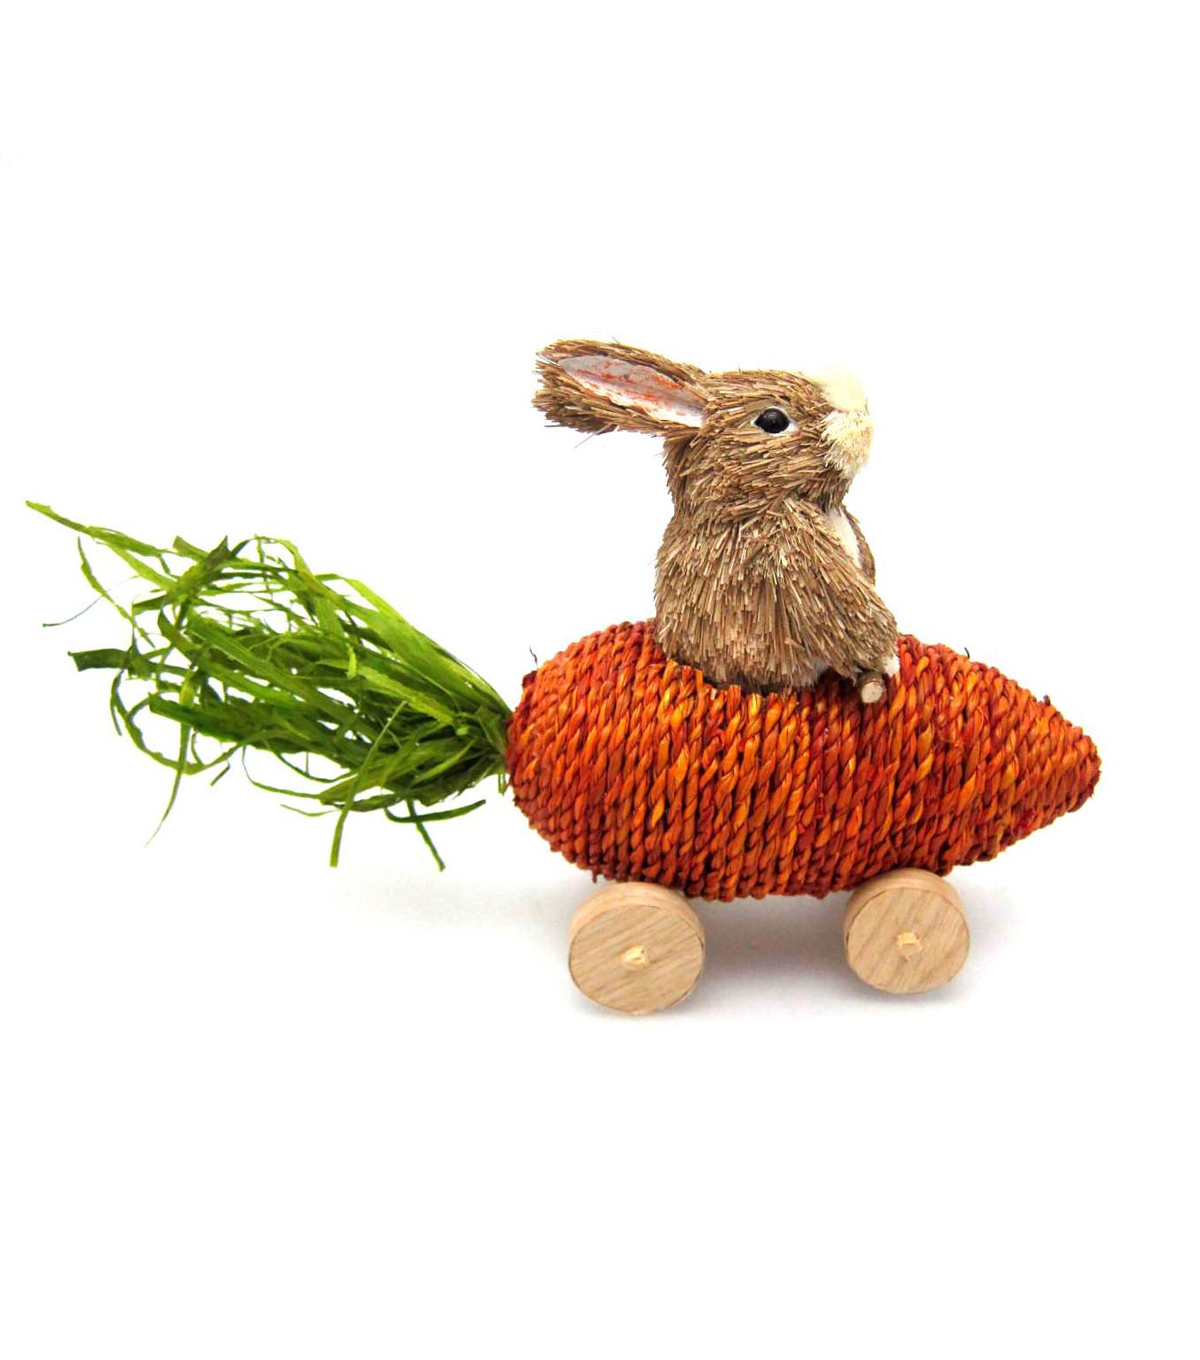 Easter Grass Bunny In Carrot Car